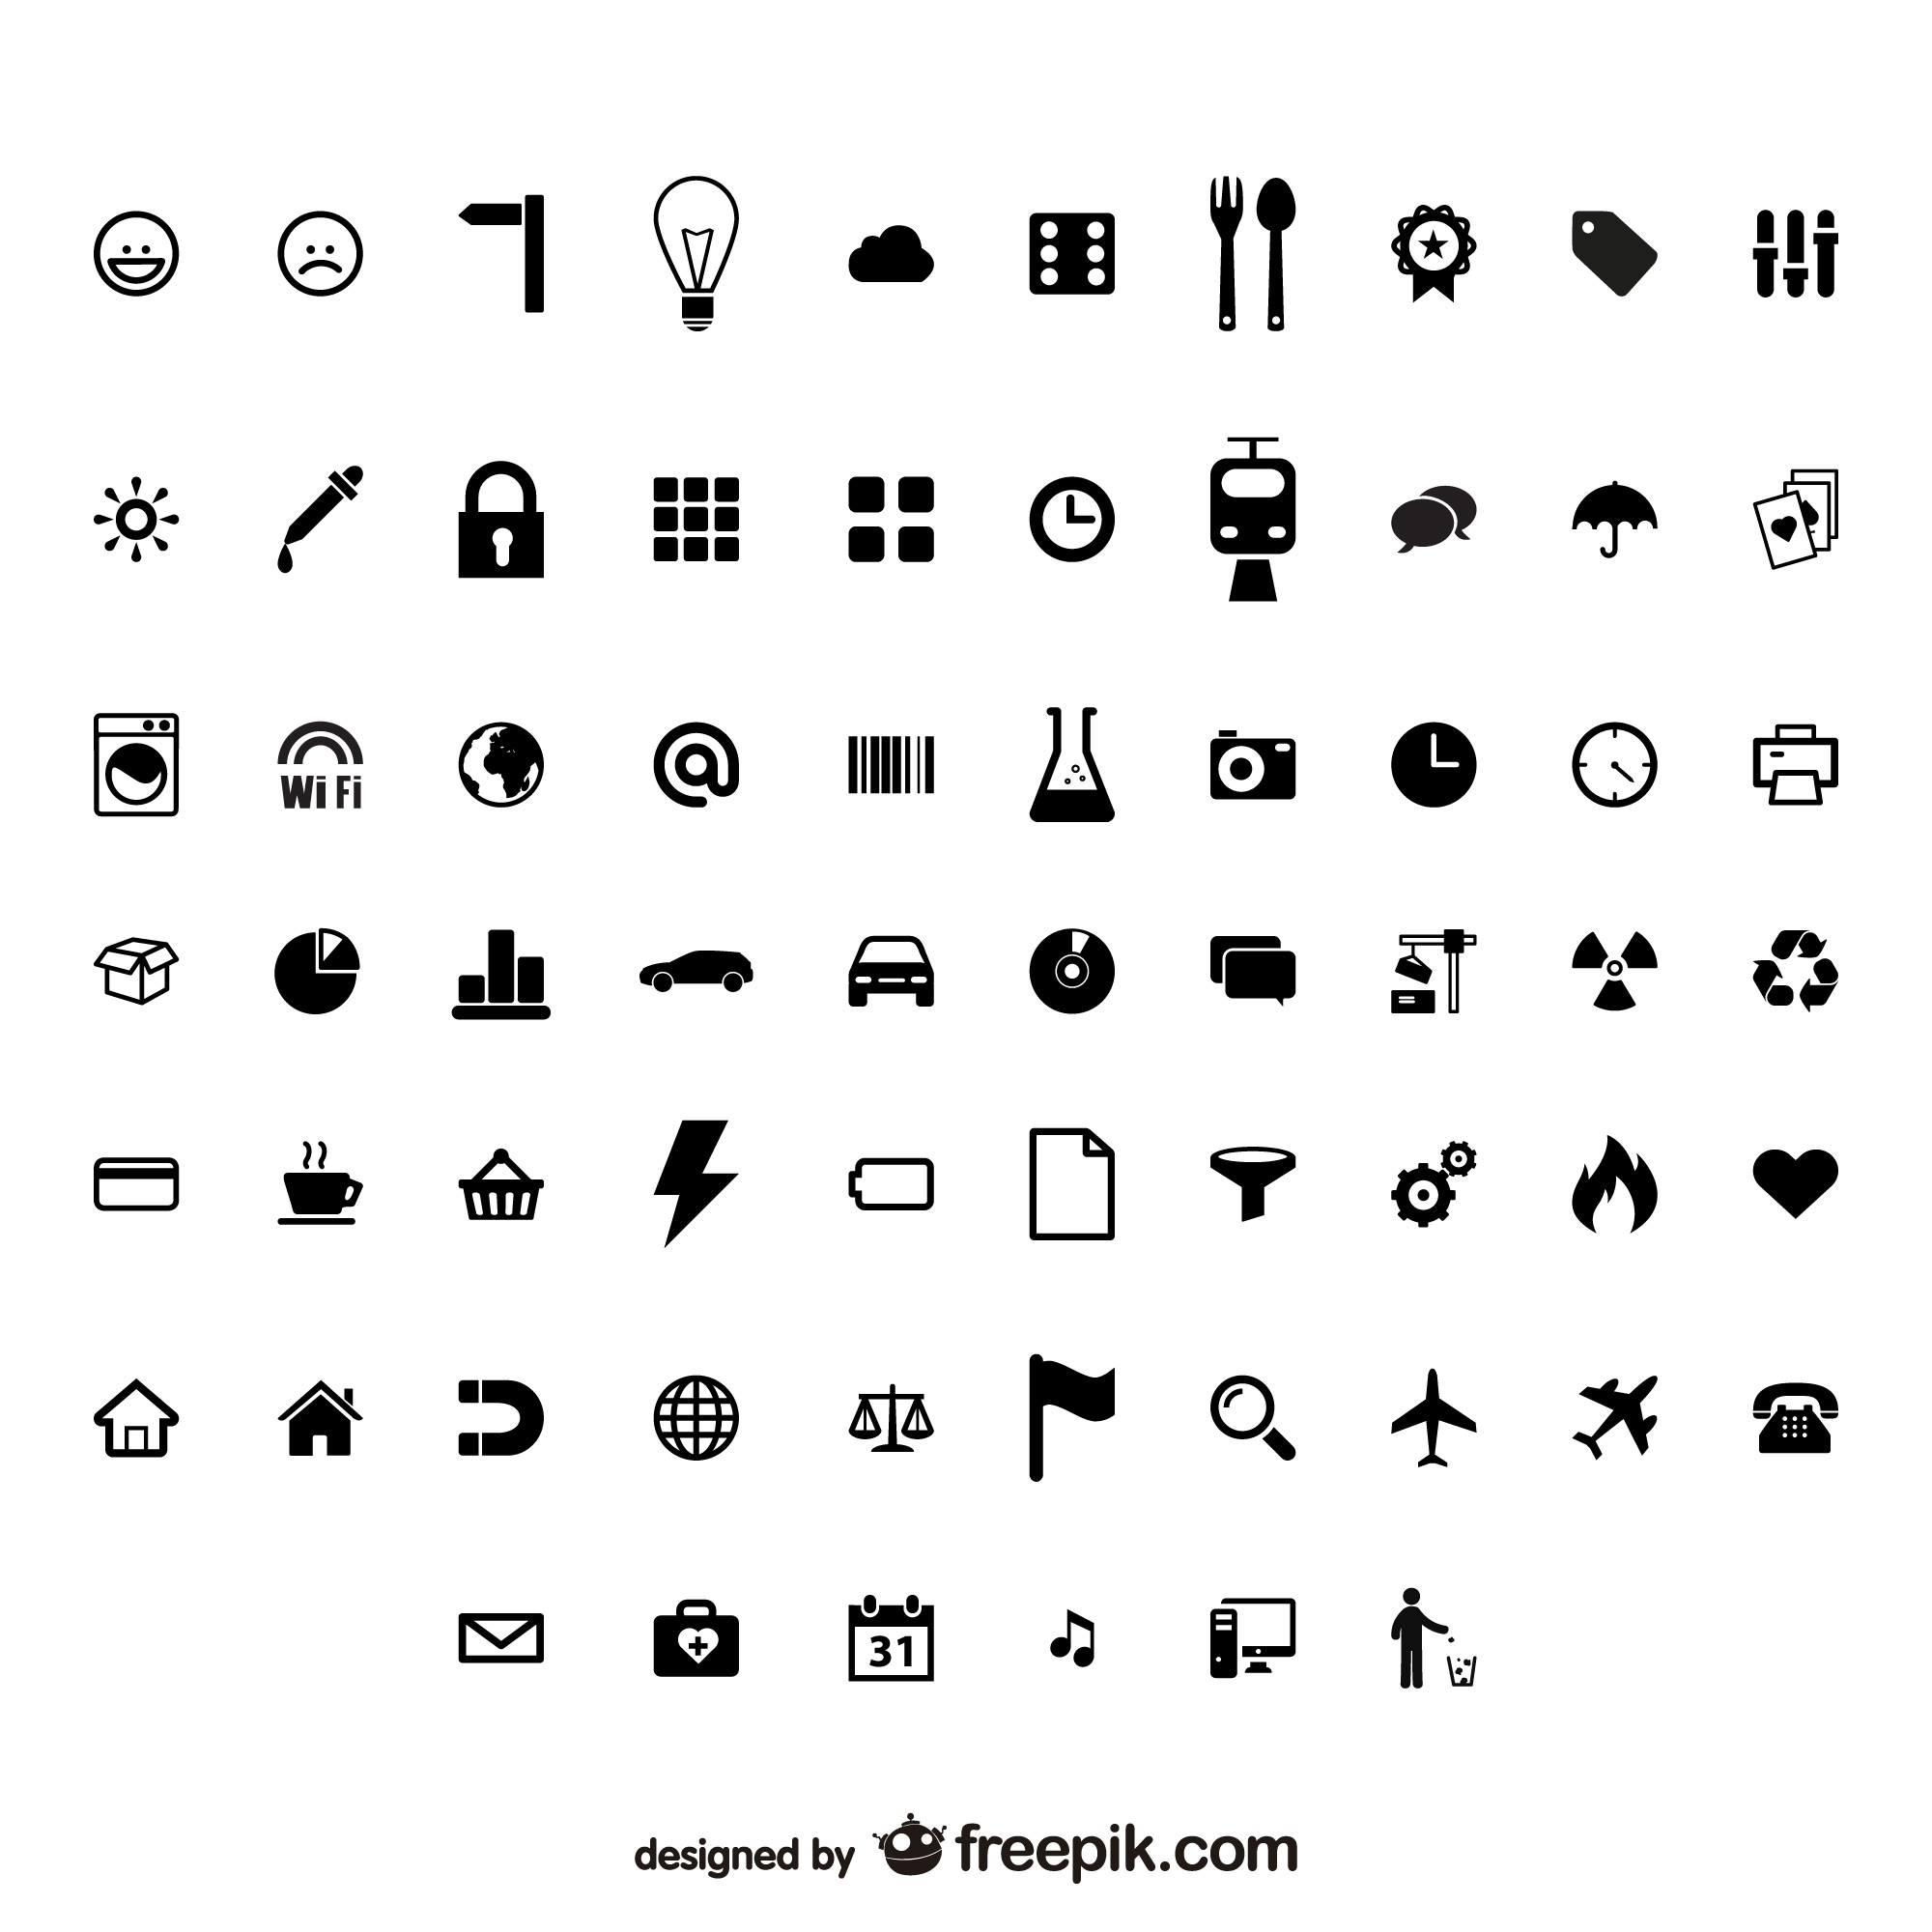 Signs And Symbols vectors, +9,000 free files in .AI, .EPS